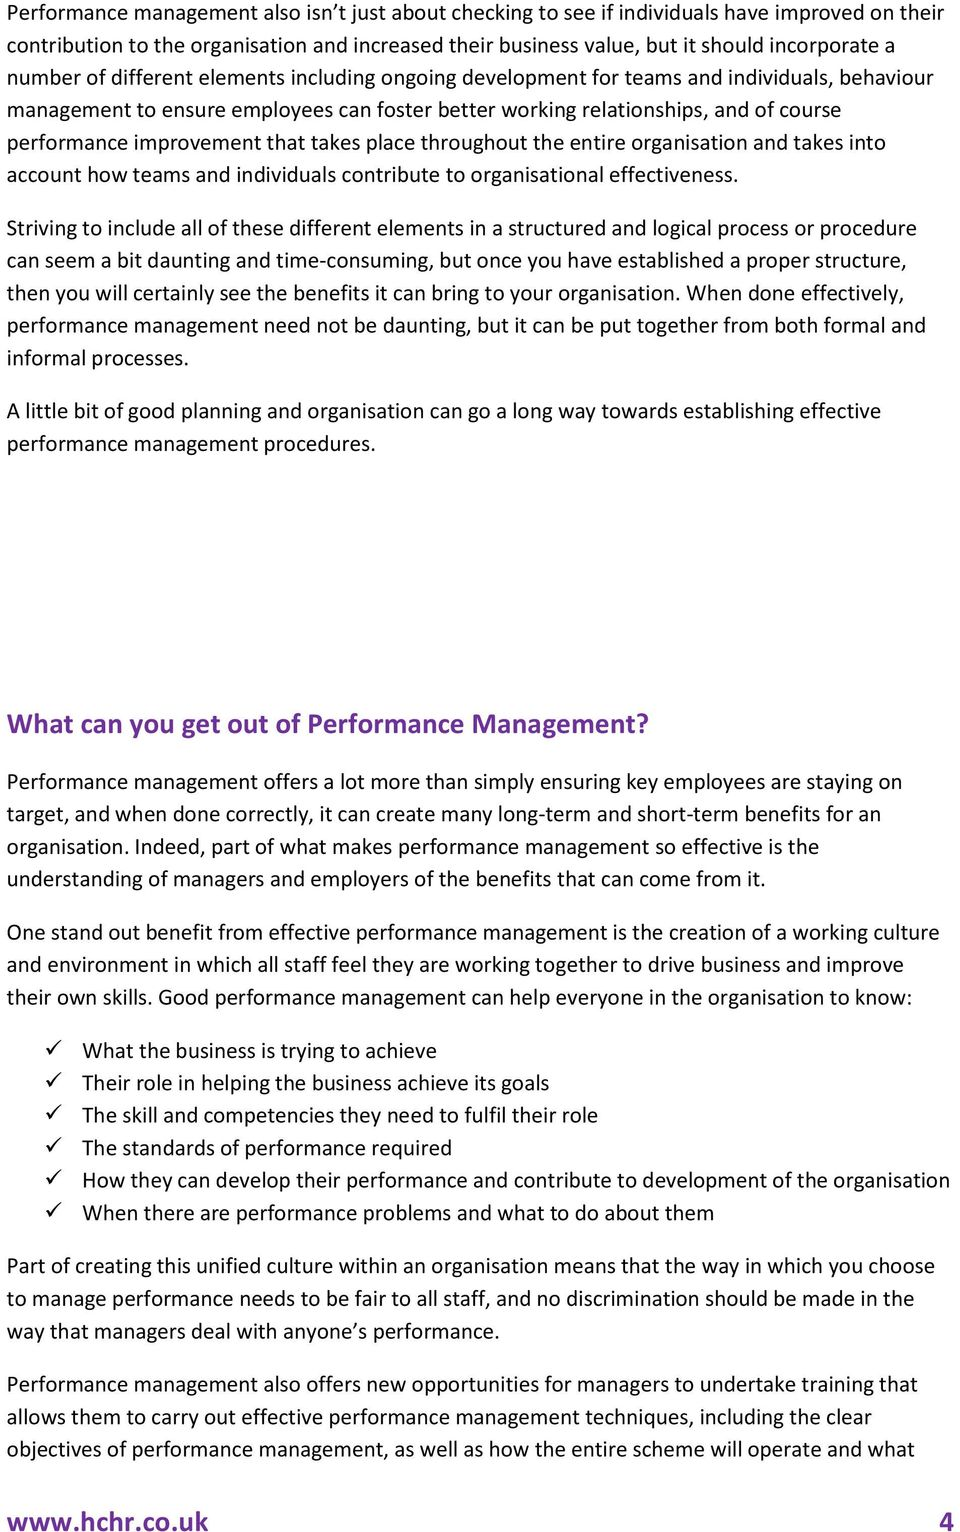 improvement that takes place throughout the entire organisation and takes into account how teams and individuals contribute to organisational effectiveness.